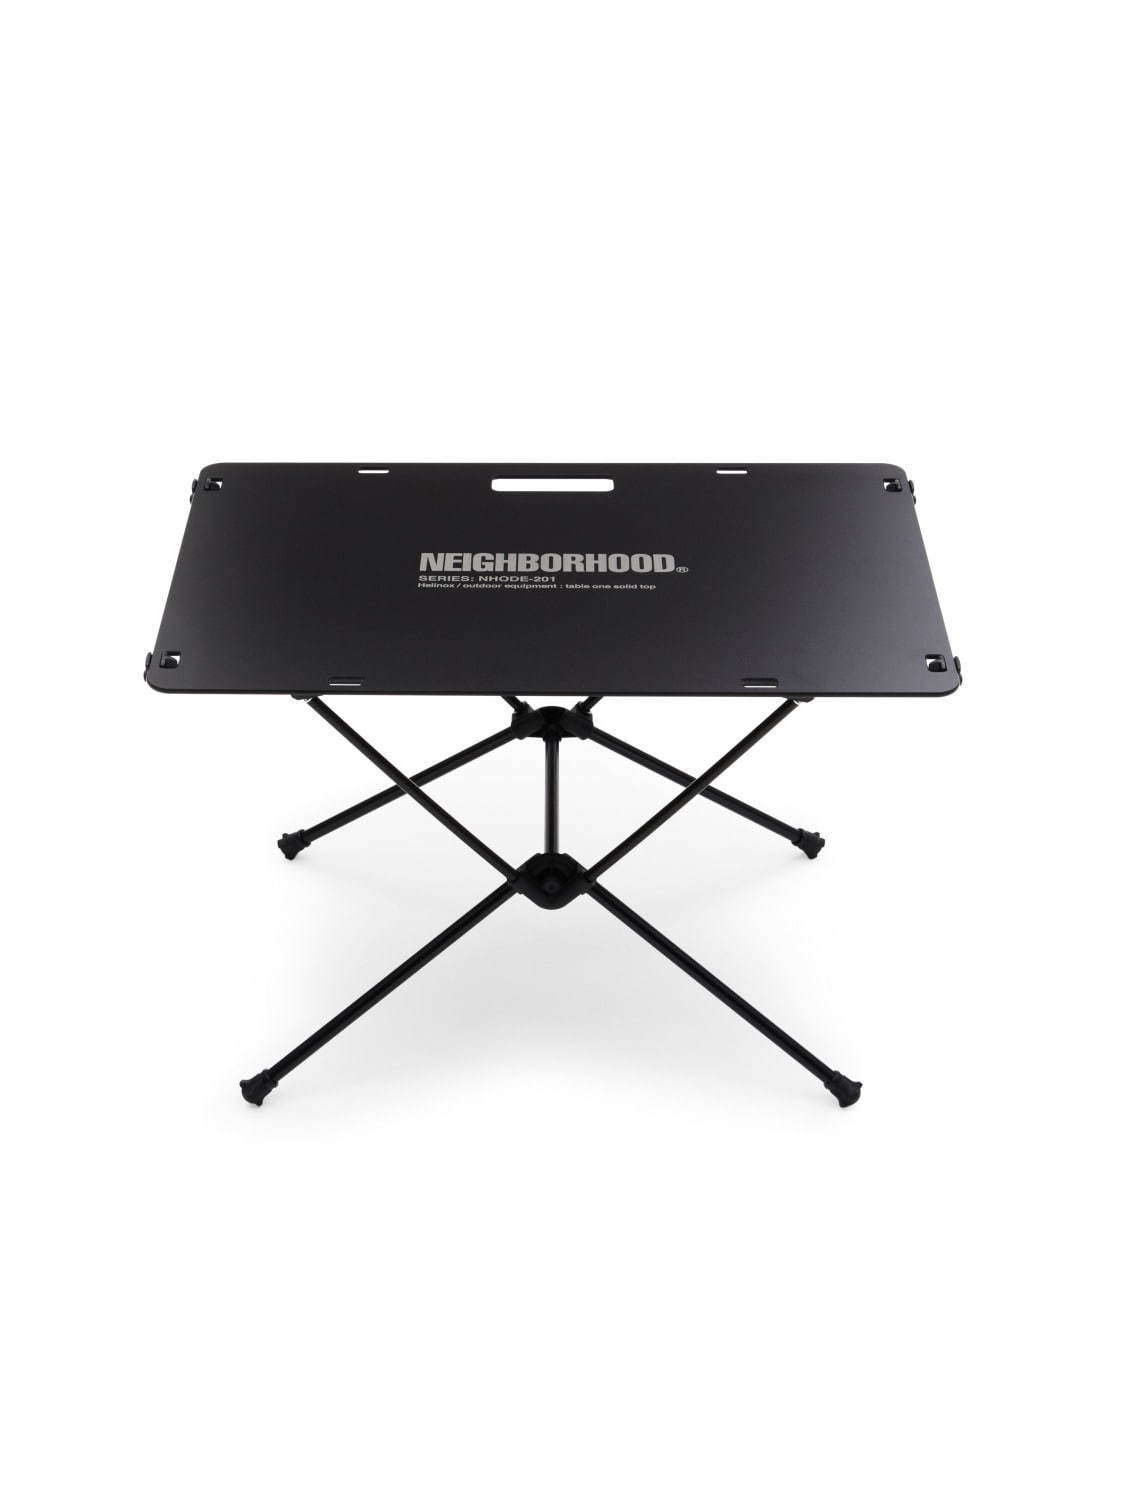 RS-SOLID TABLE 25,000円+税